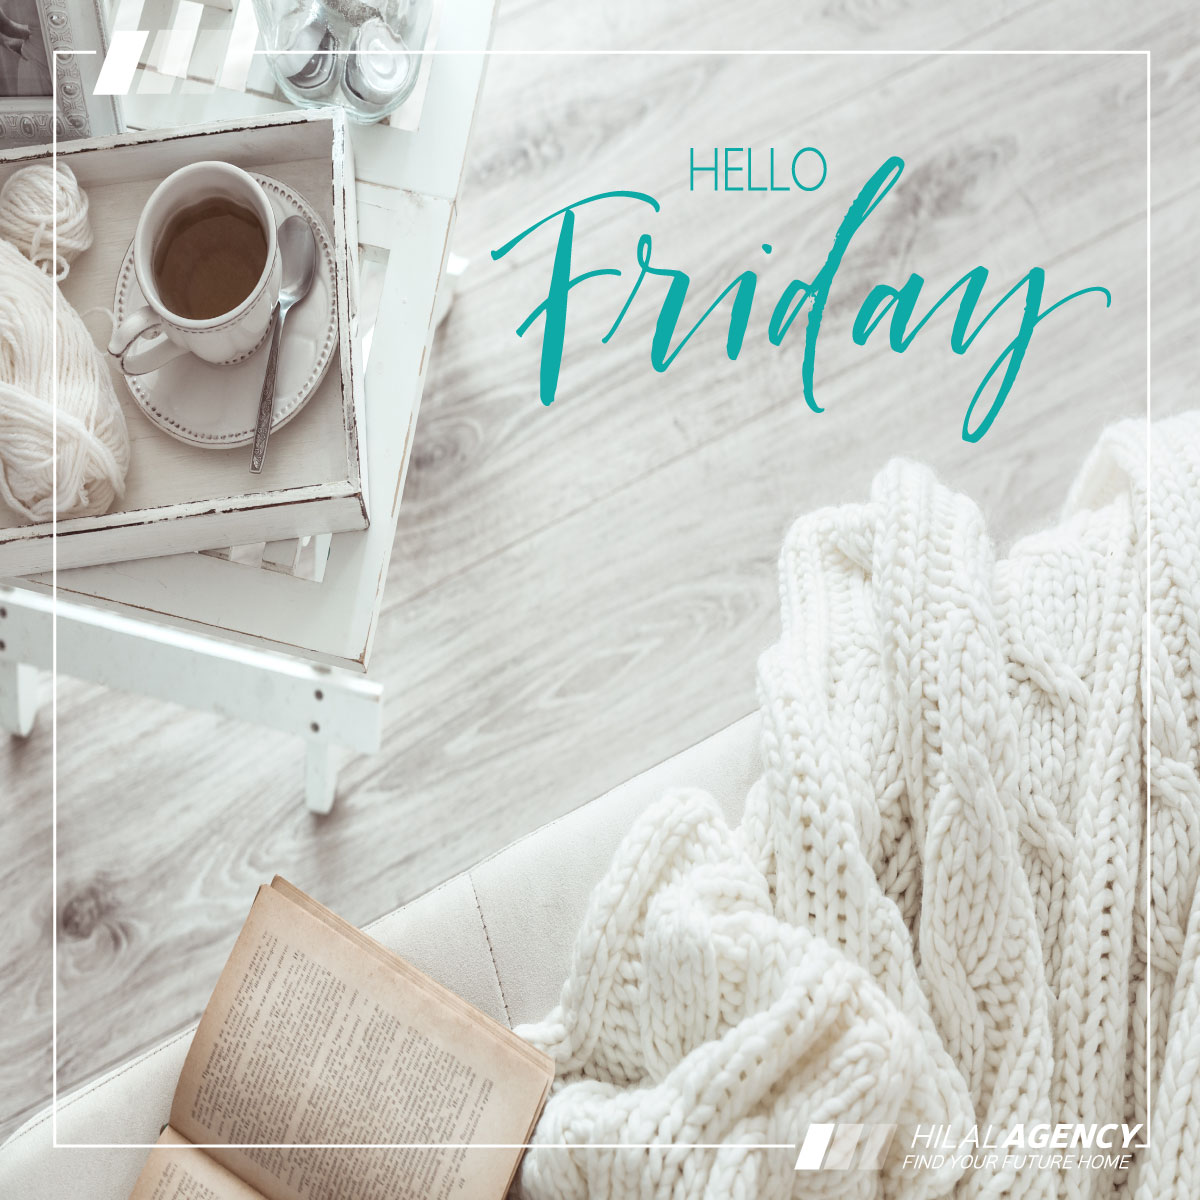 It's the weekend. Enjoy it 😃  #Weekend #GoodVibes #hilalagency #listings #realestate #advertising #agents #sellers #brokers #developers #buyers #sale #rent #investment #construction #project #building #apartment #house